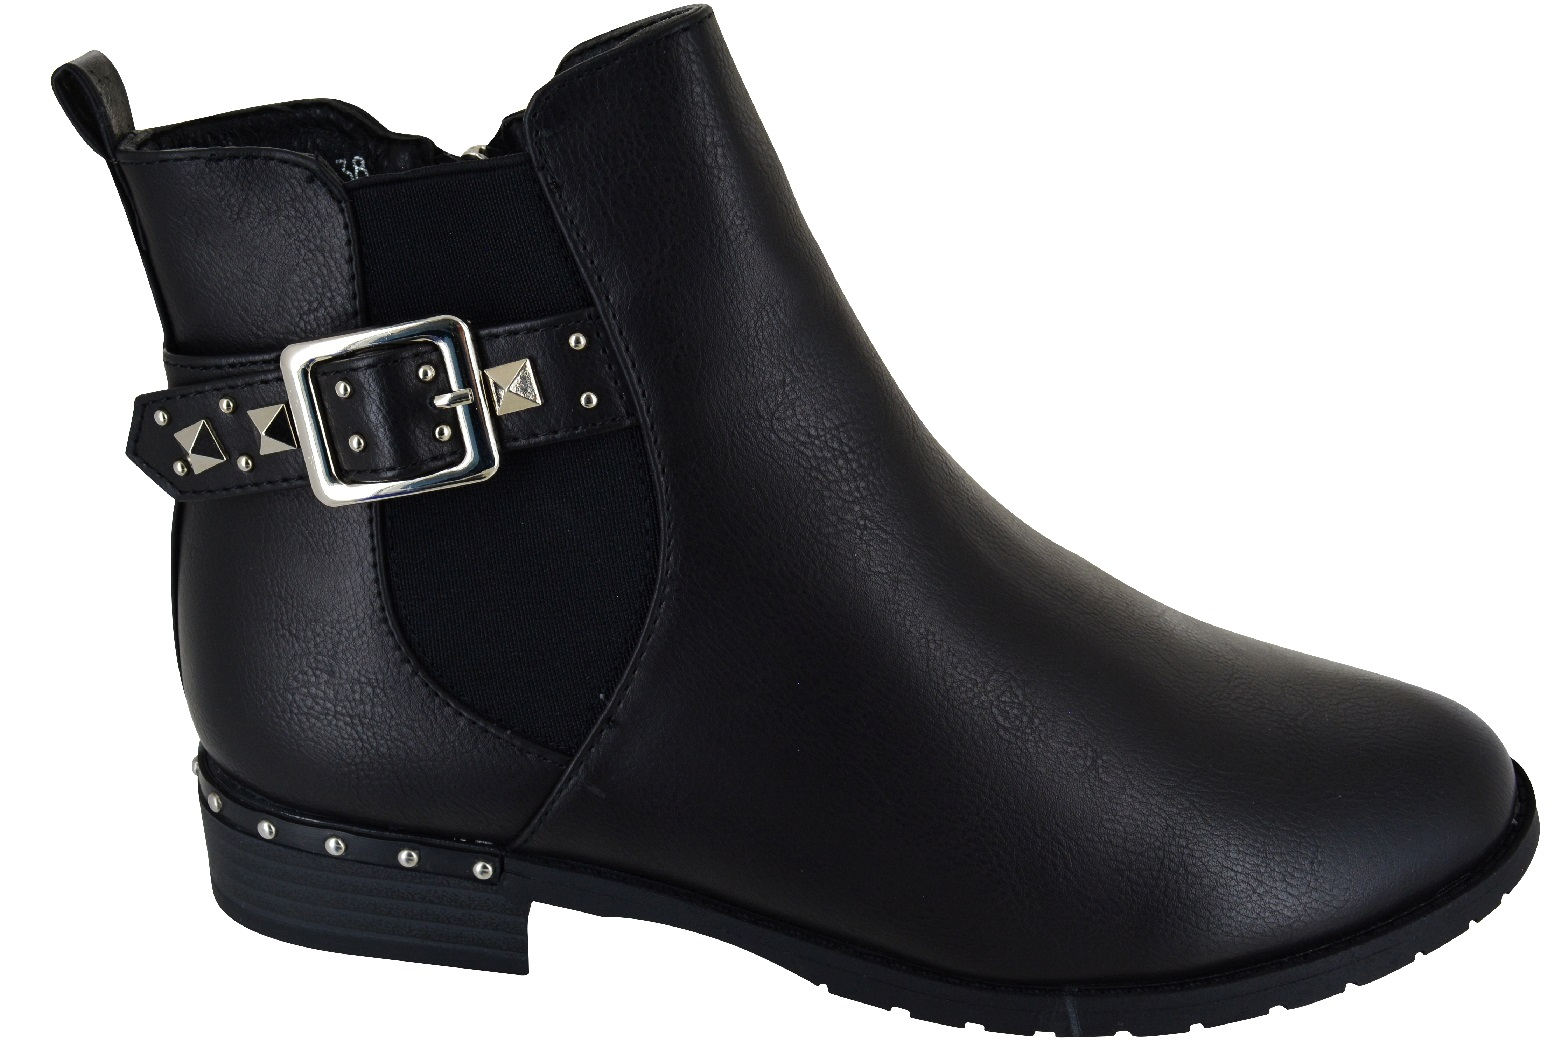 LADIES-WOMENS-FLAT-ANKLE-CASUAL-BUCKLE-CHELSEA-SIDE-ZIP-LOW-HEEL-SHOES-BOOTS-SZ thumbnail 4